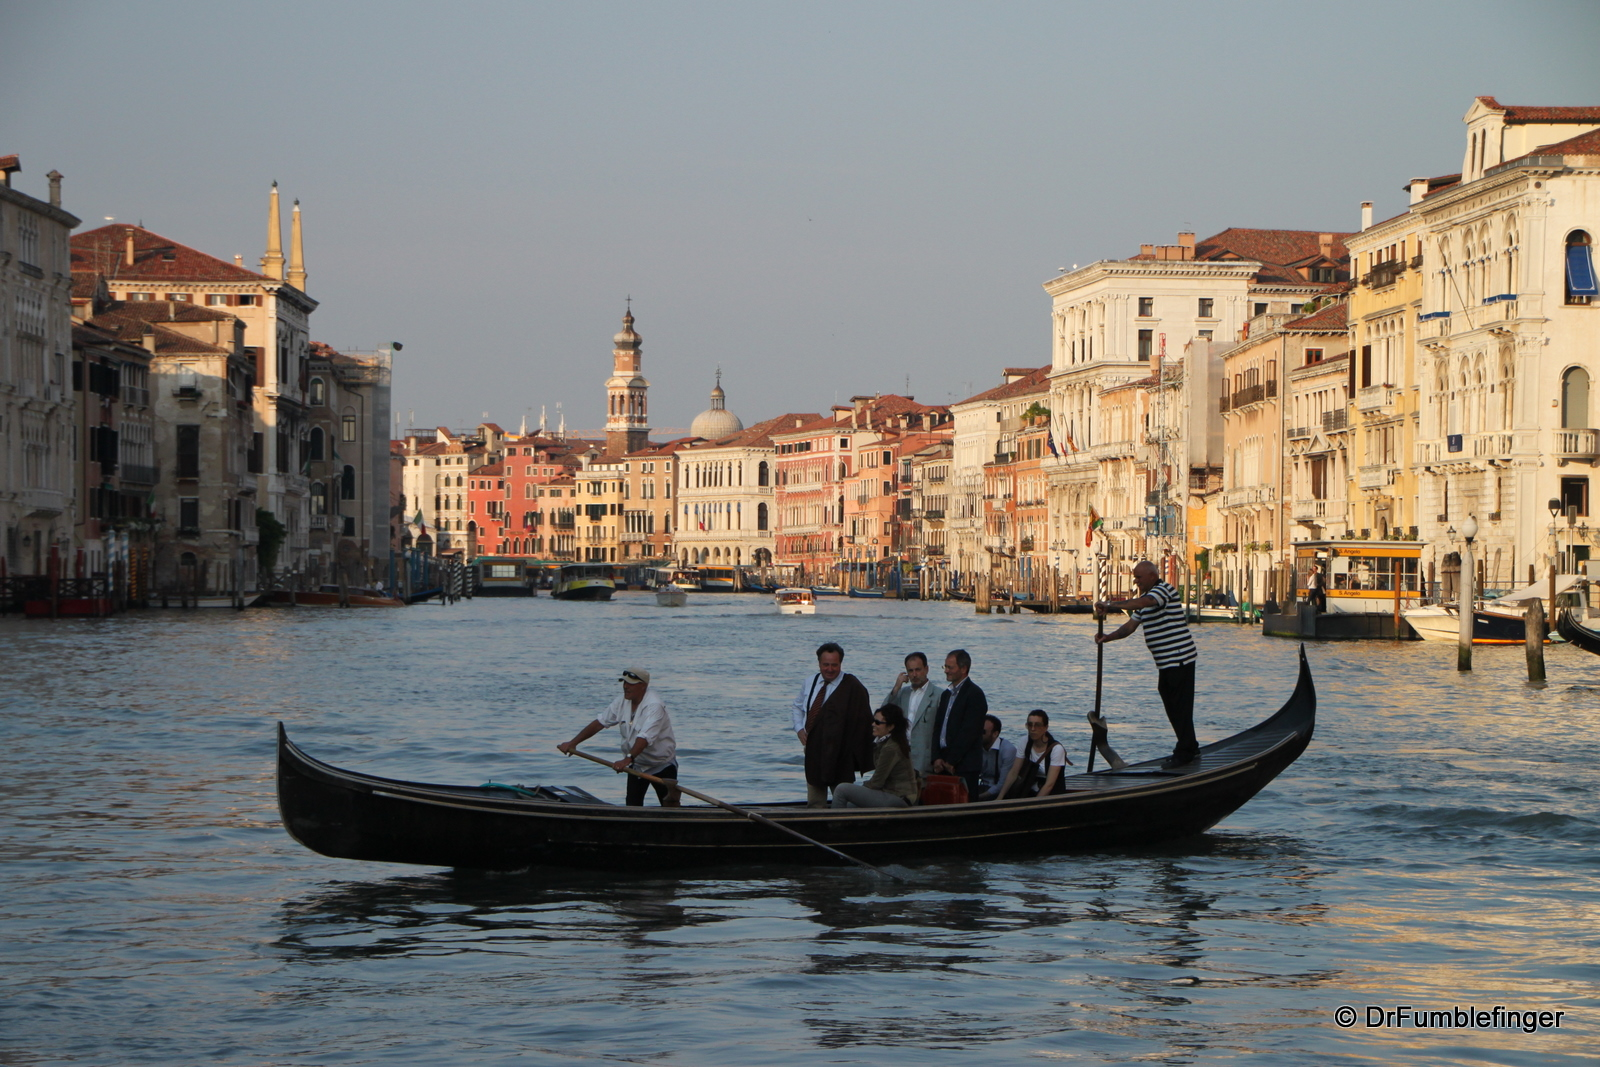 Traghetto crossing the Grand Canal